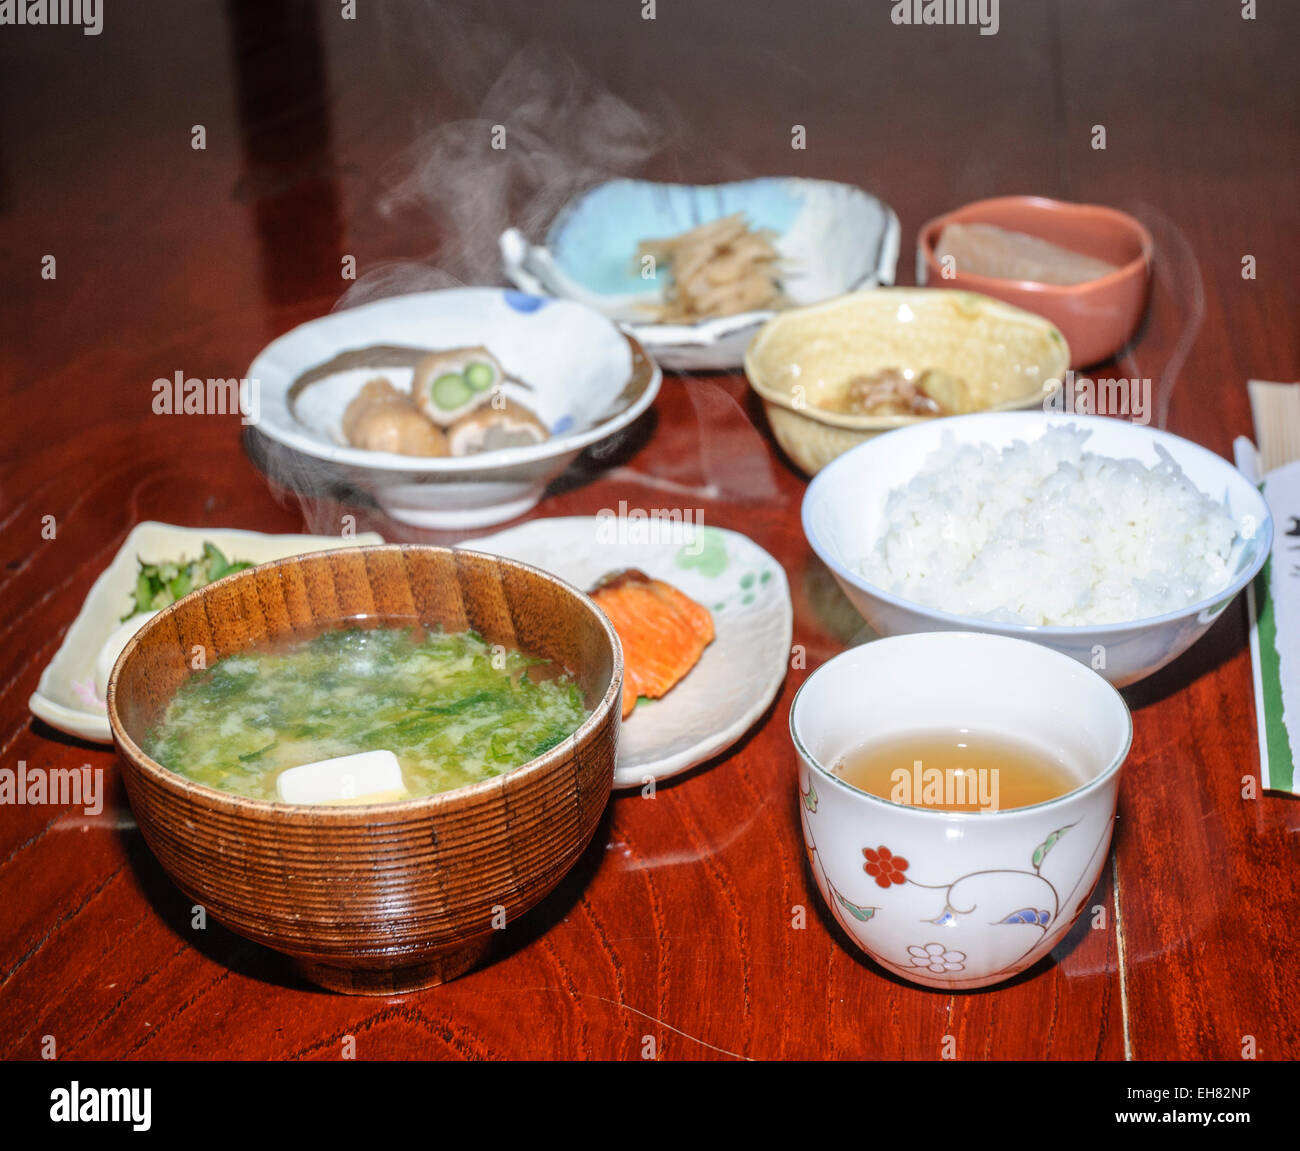 Steaming hot food in a traditional Japanese meal: several courses of the evening meal are served at the same time. - Stock Image